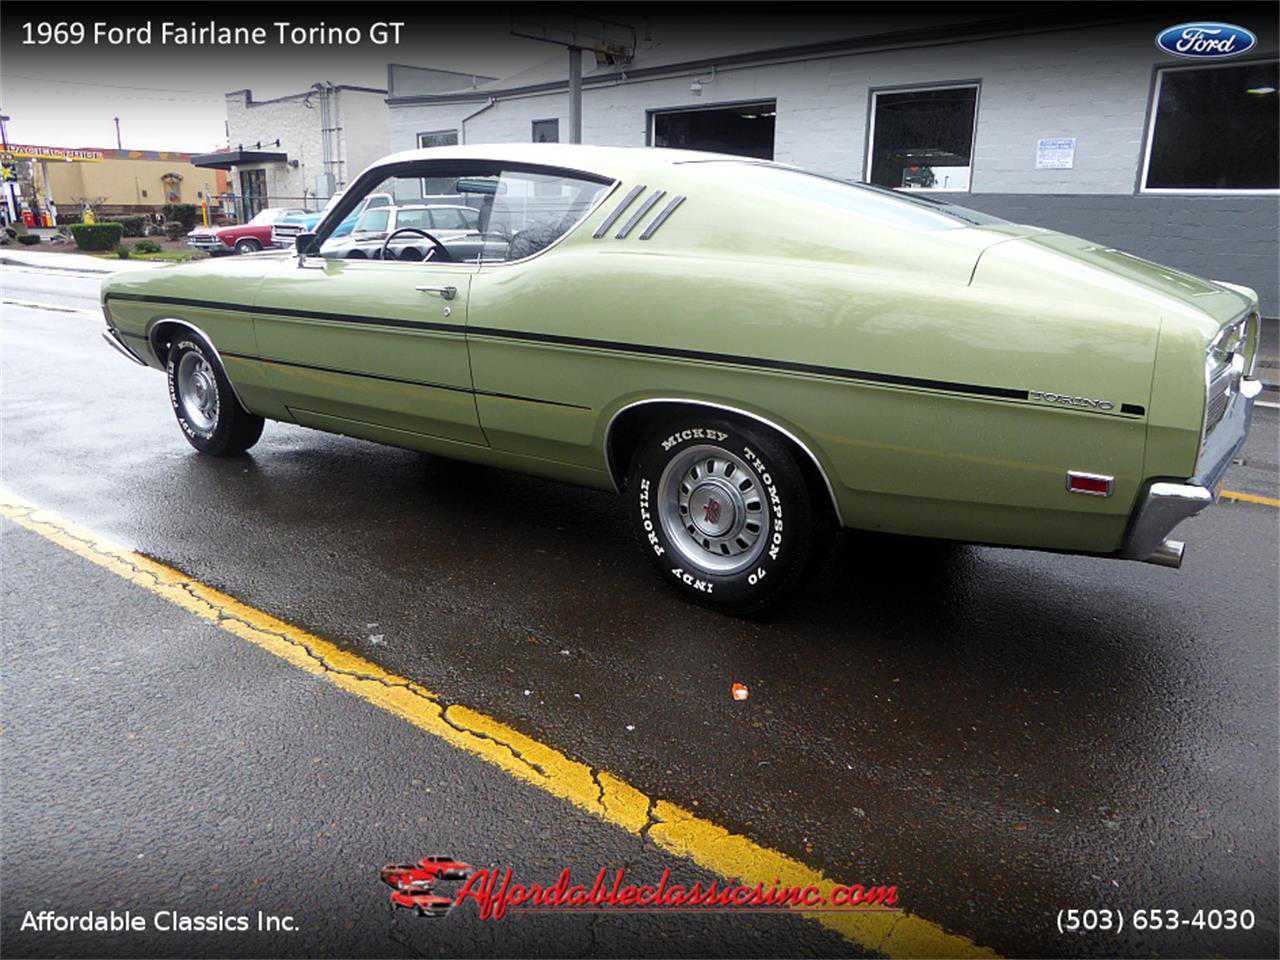 1969 Ford Fairlane Muscle Cars Torino Gt For Sale In Gladstone Or